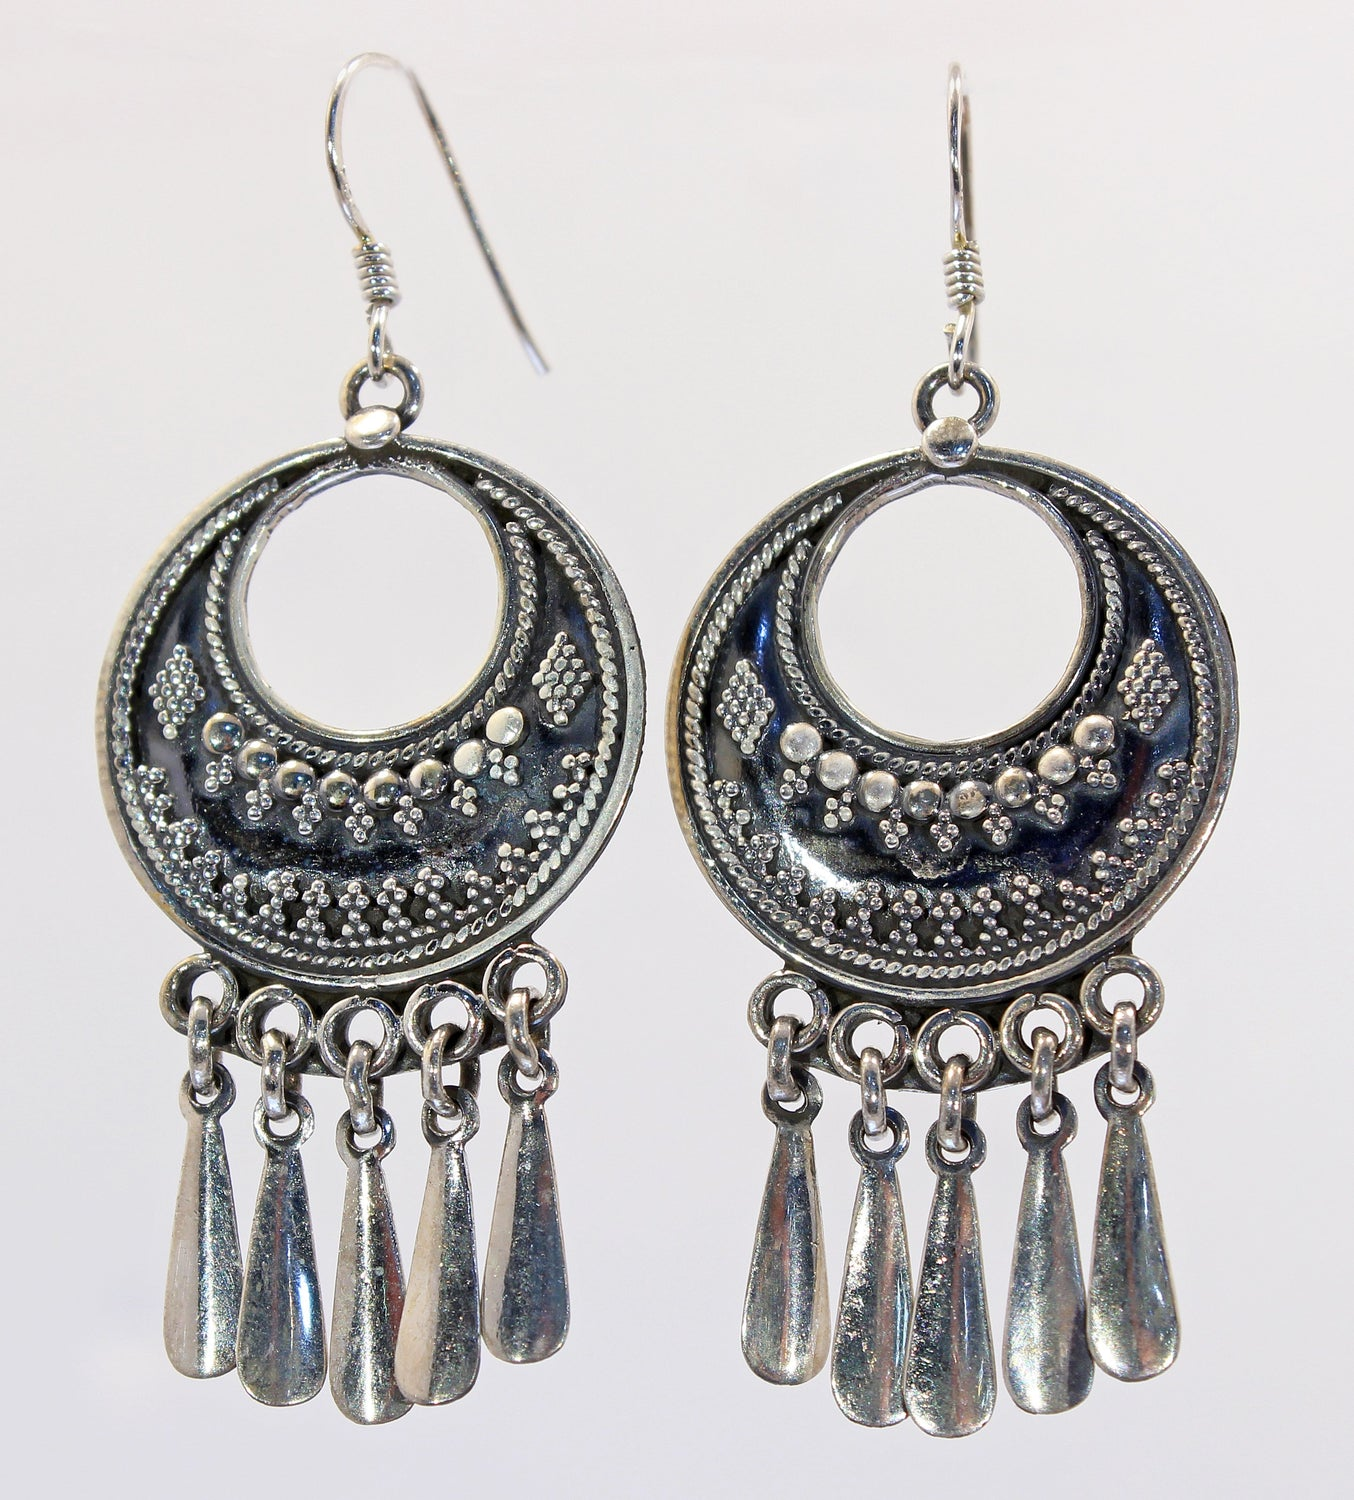 Handmade Sterling Silver Tribal Rajastani Earrings